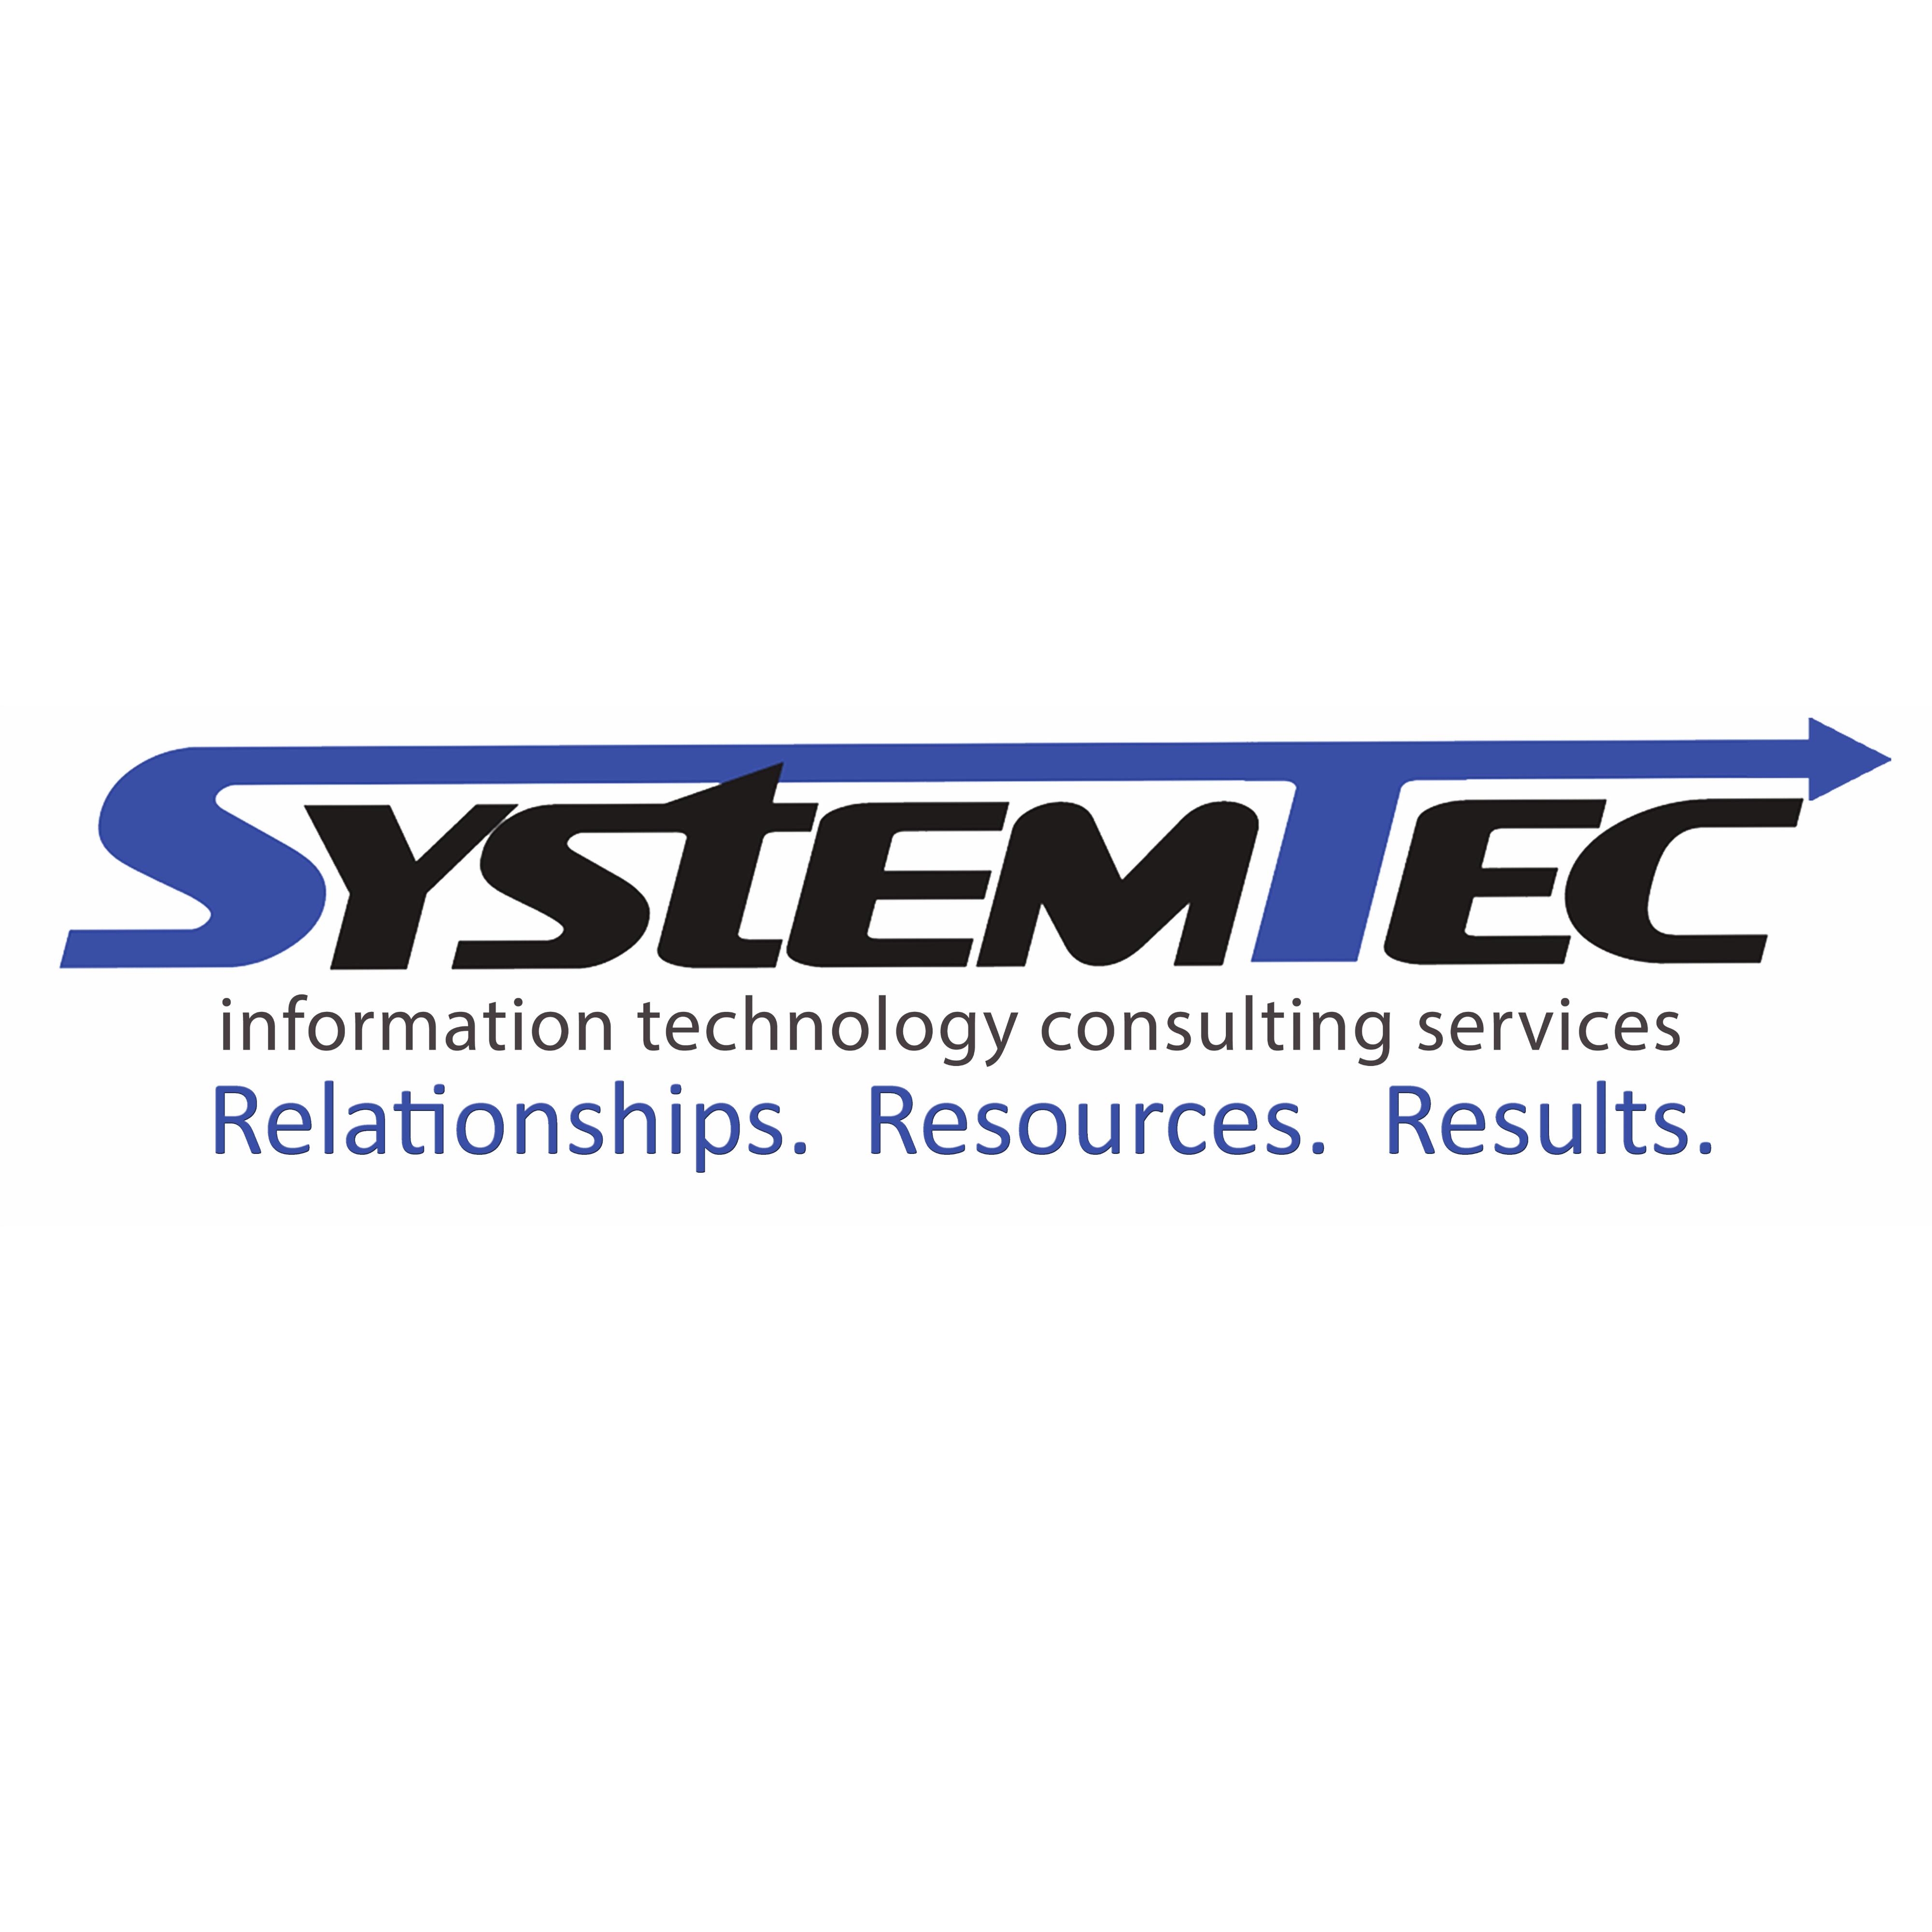 systemtec